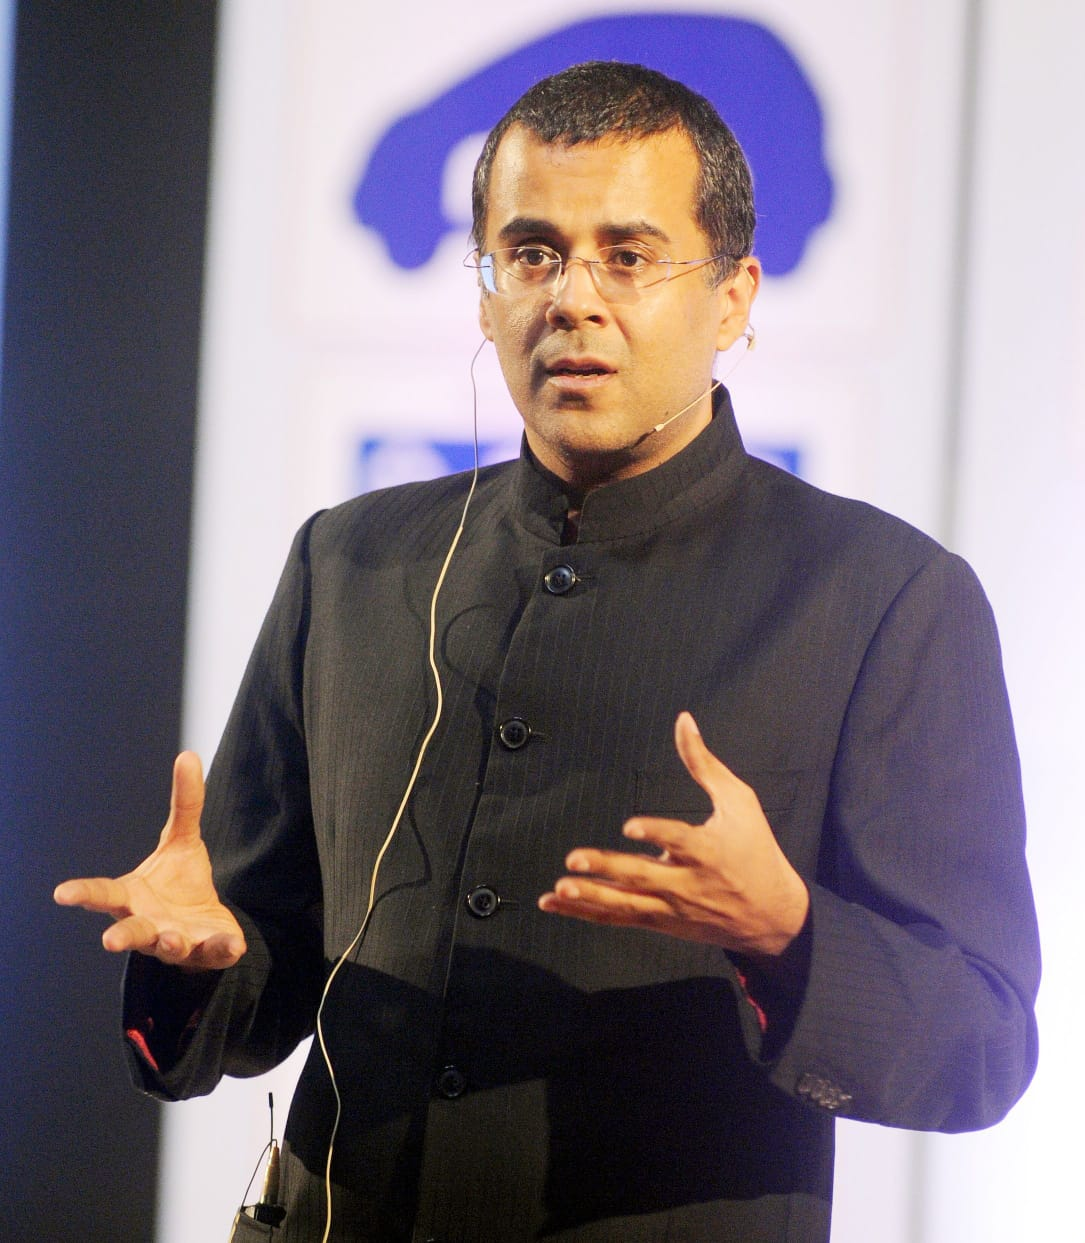 Chetan Bhagat is a famous writer